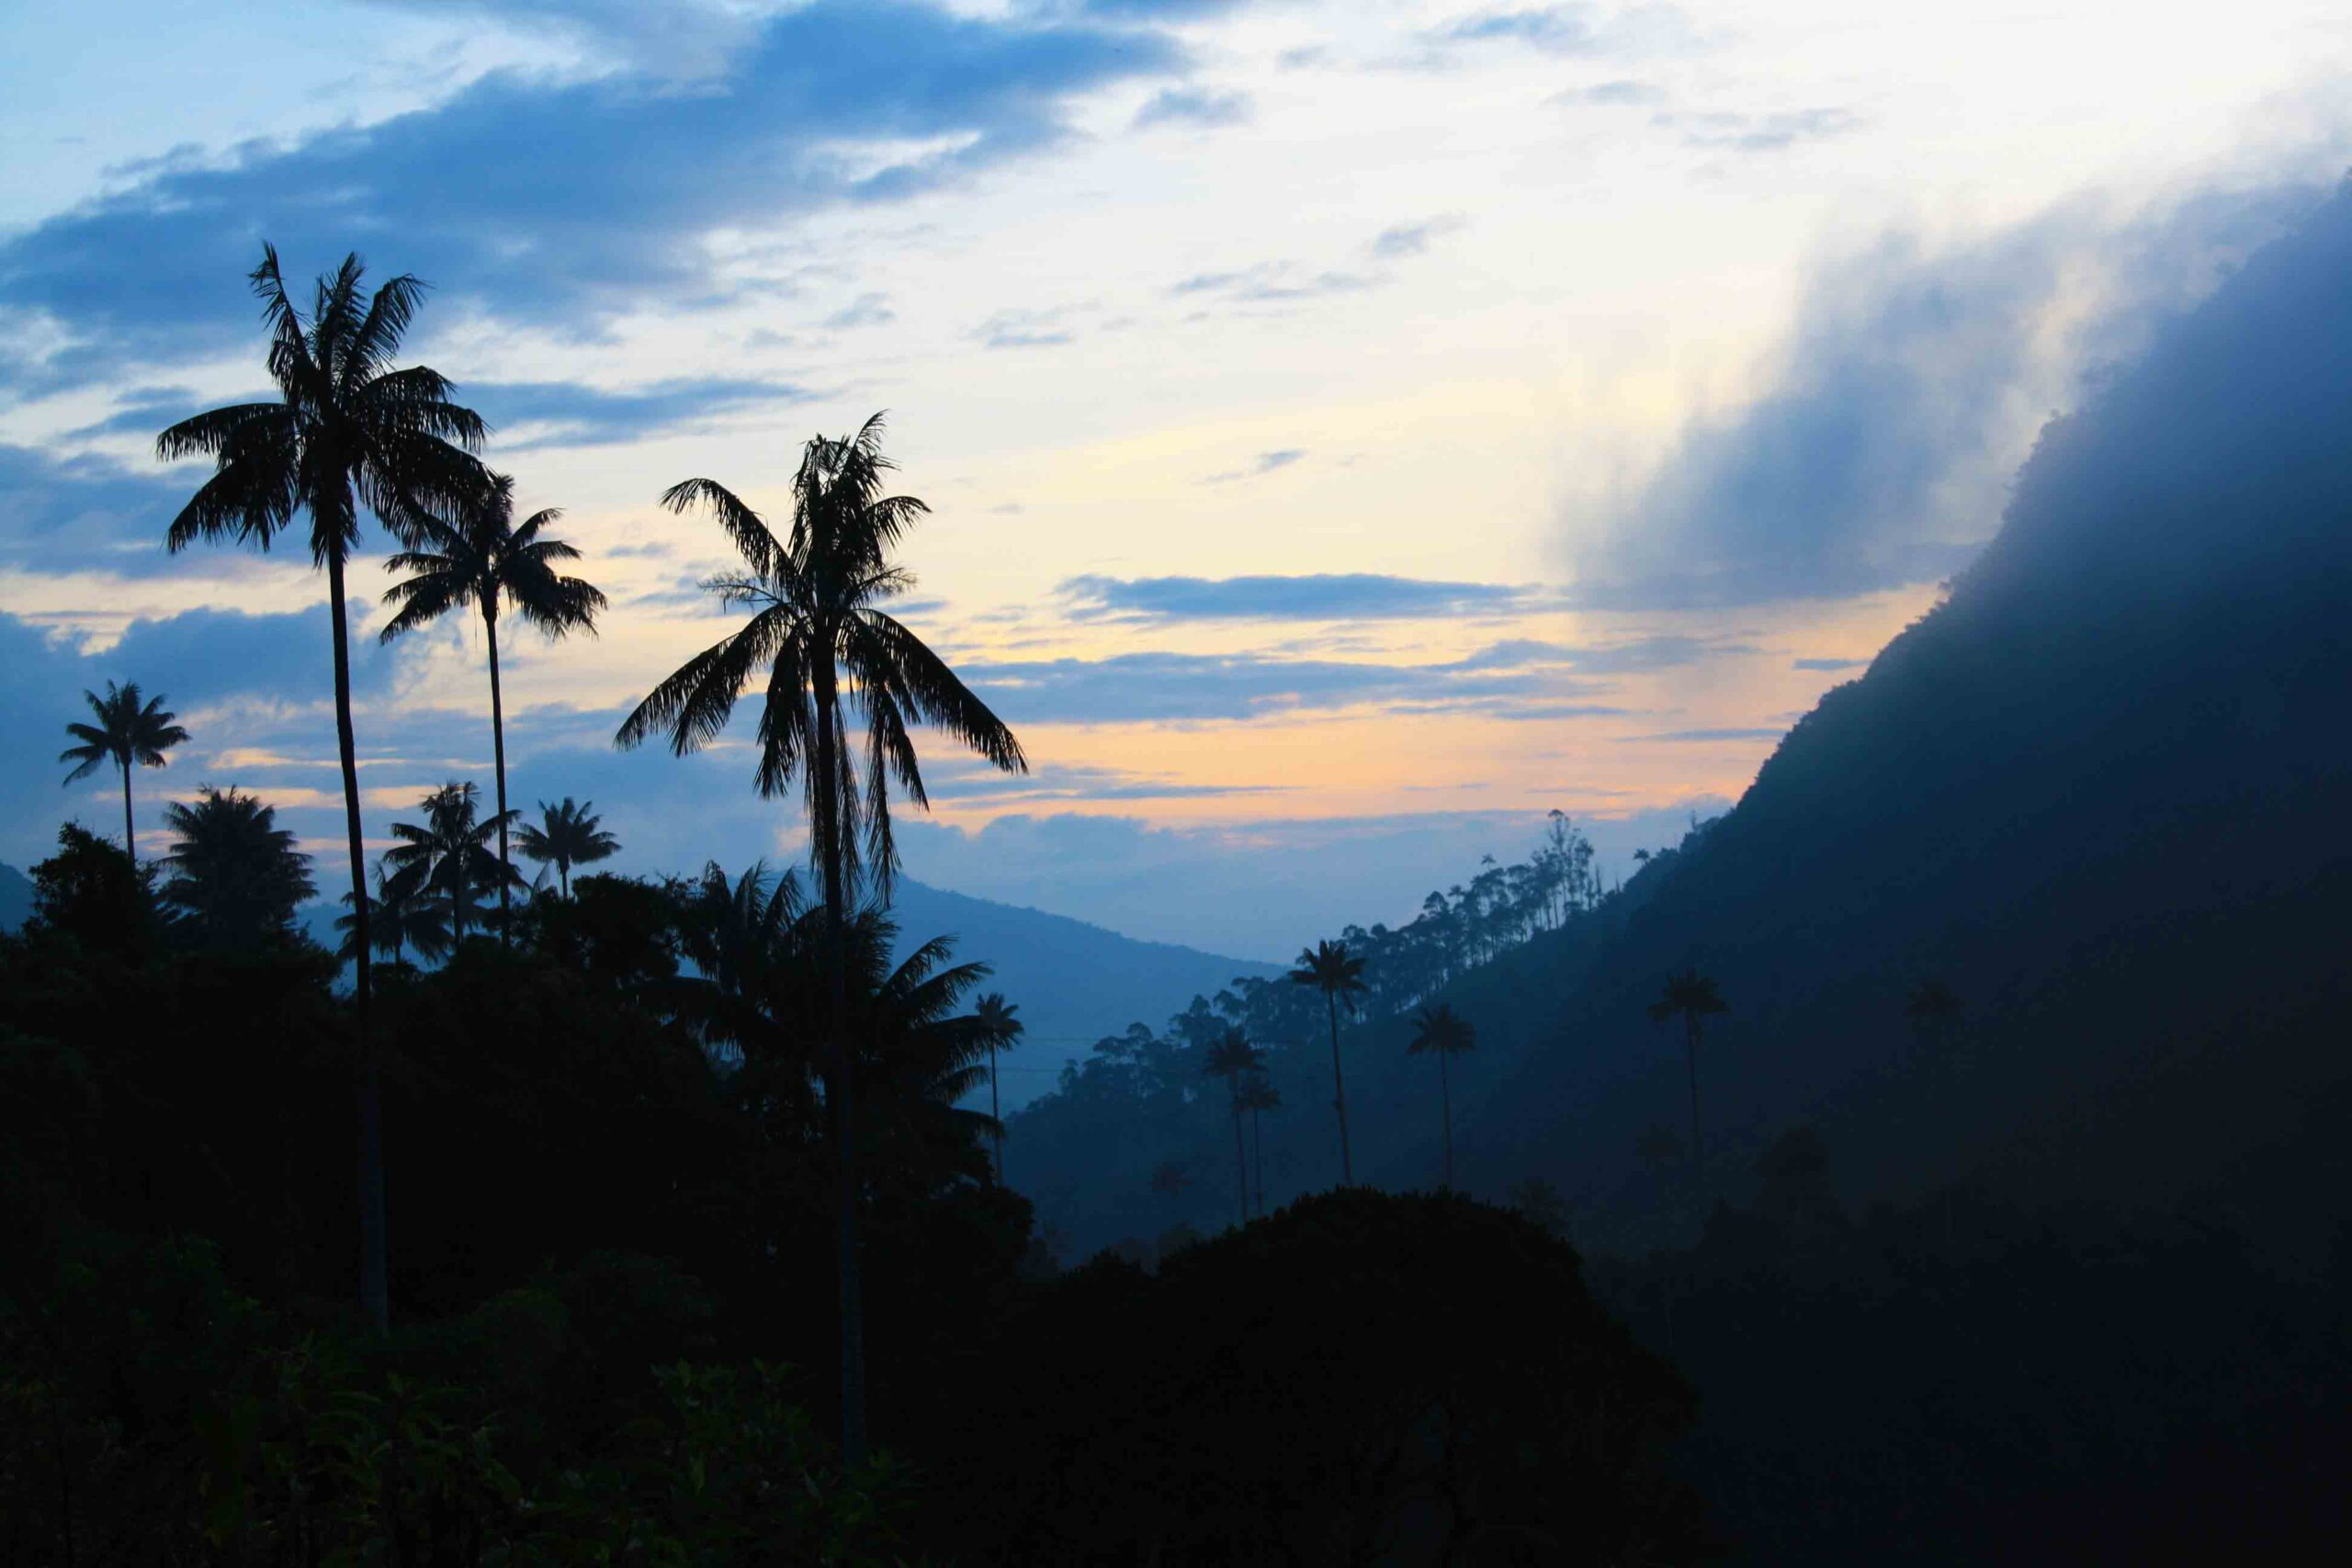 sunset valle del cocora in Colombia